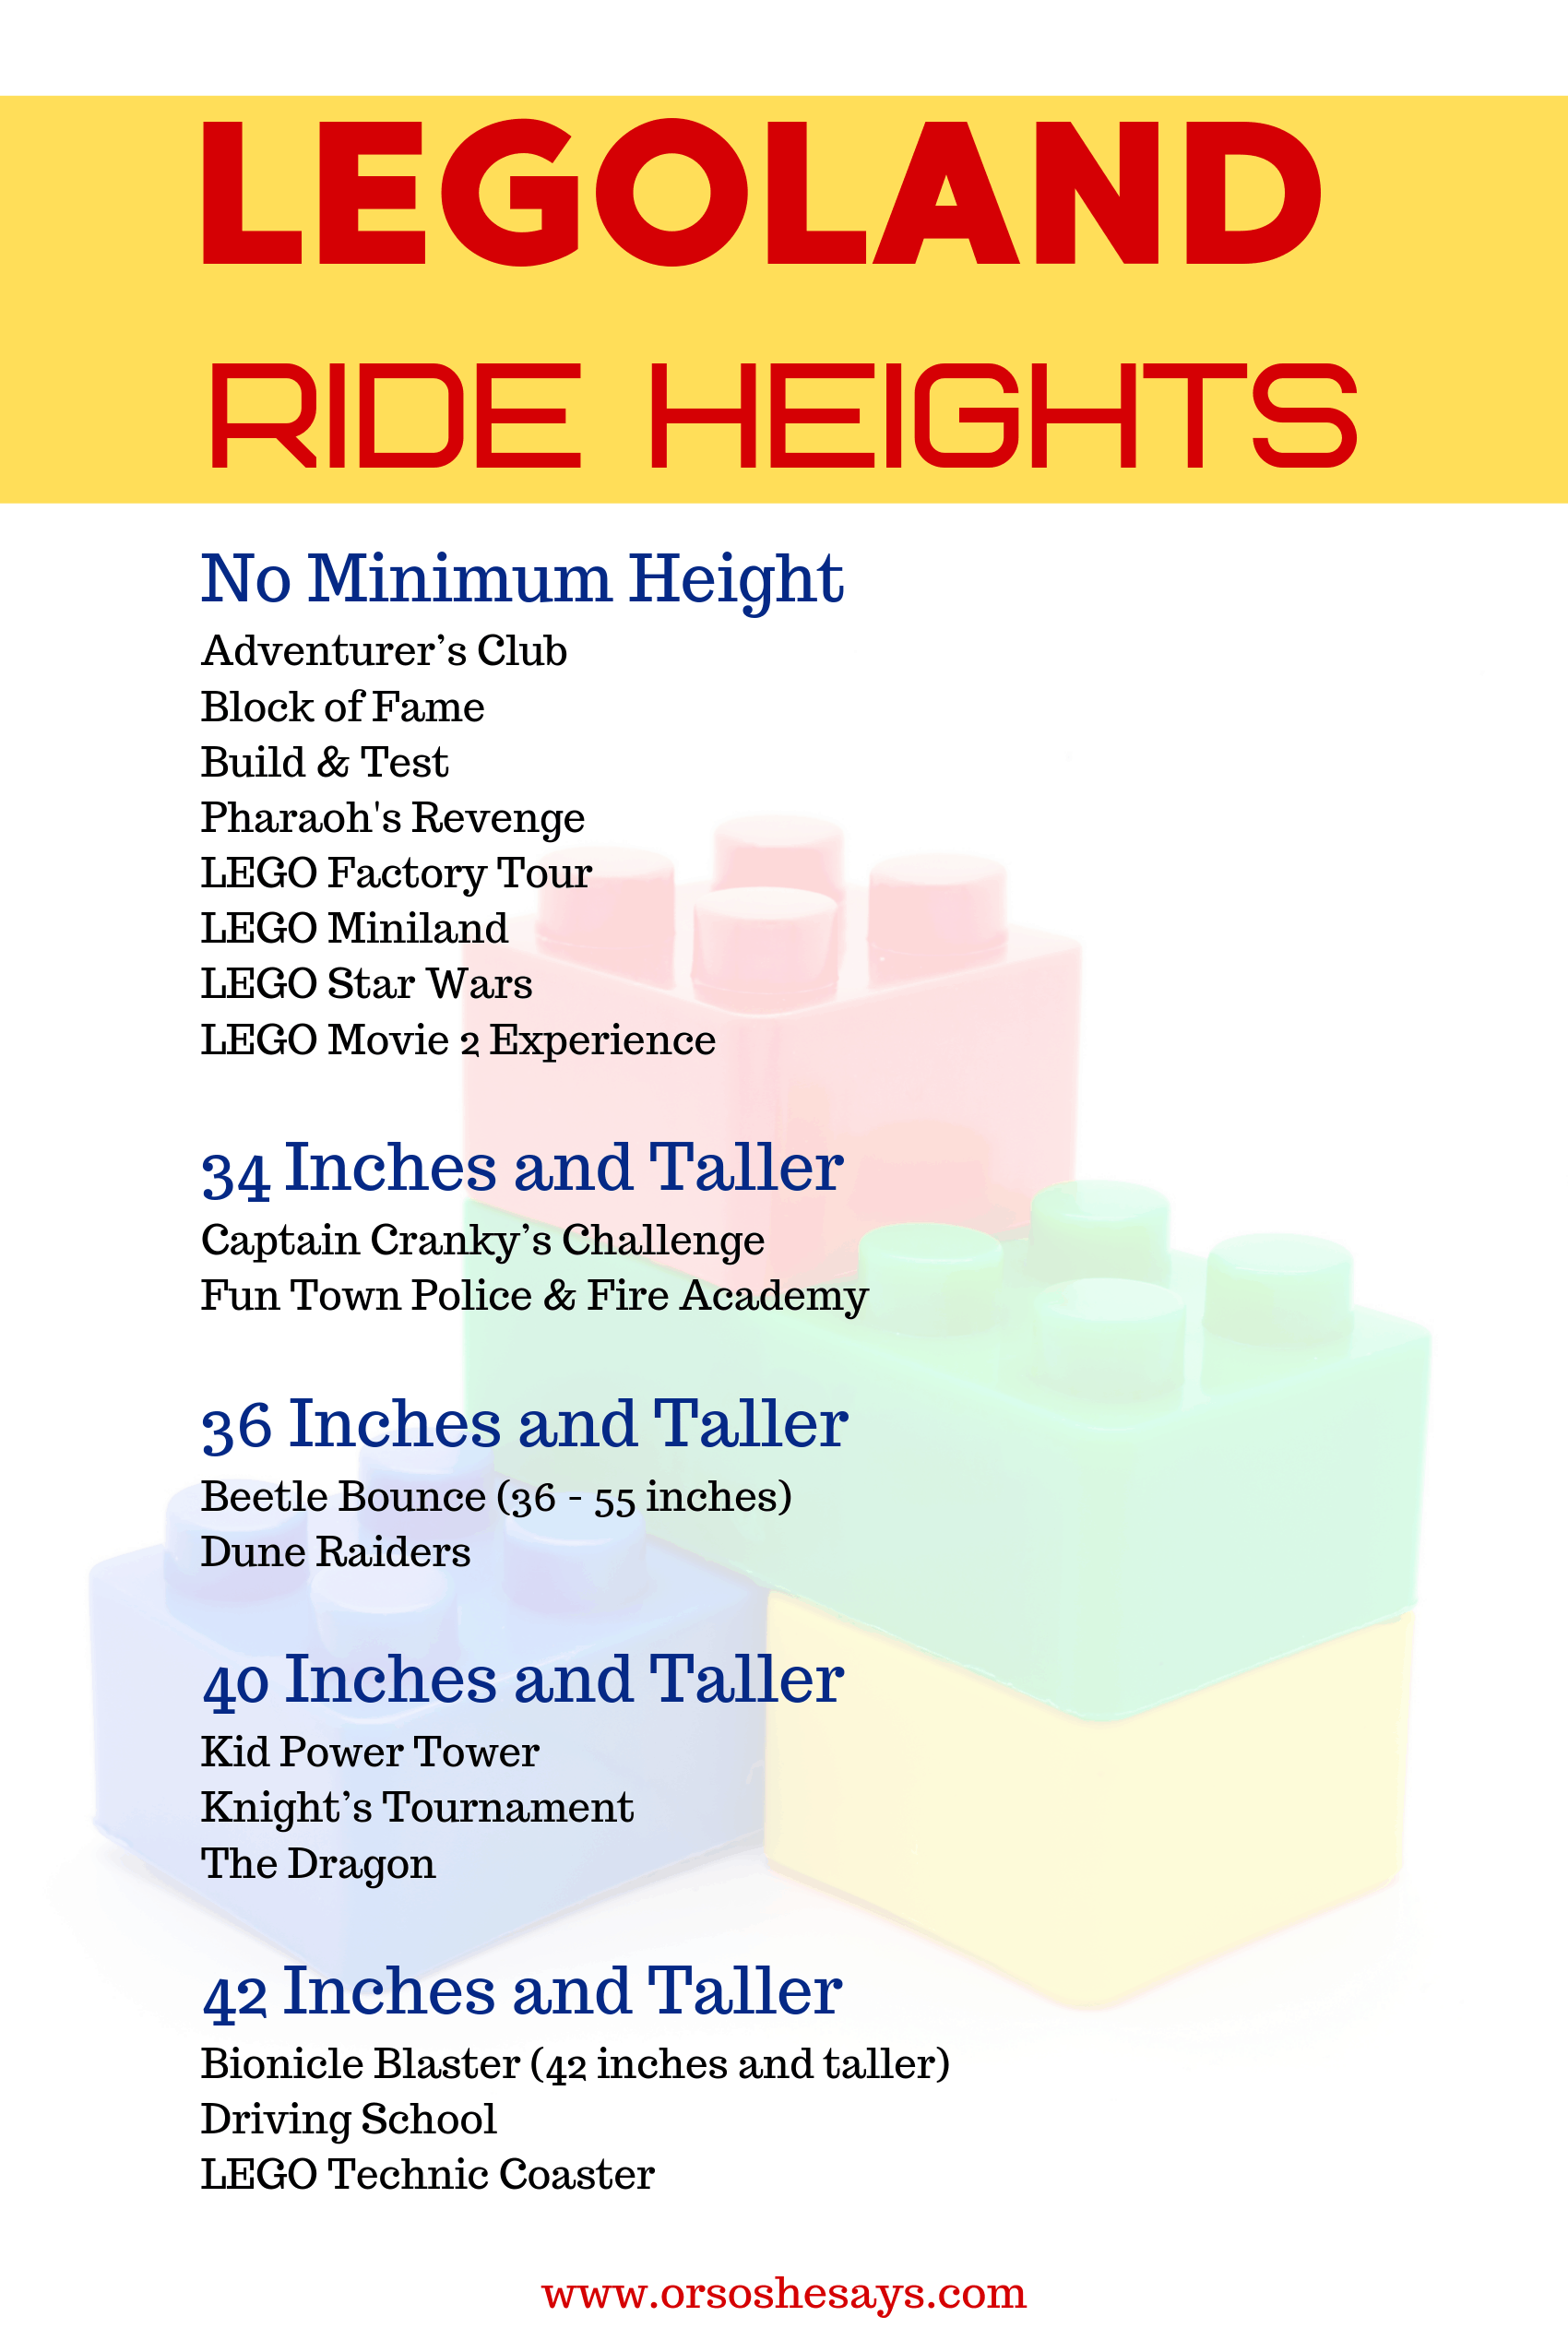 Legoland Family Vacation Ride Heights Hotels Discount